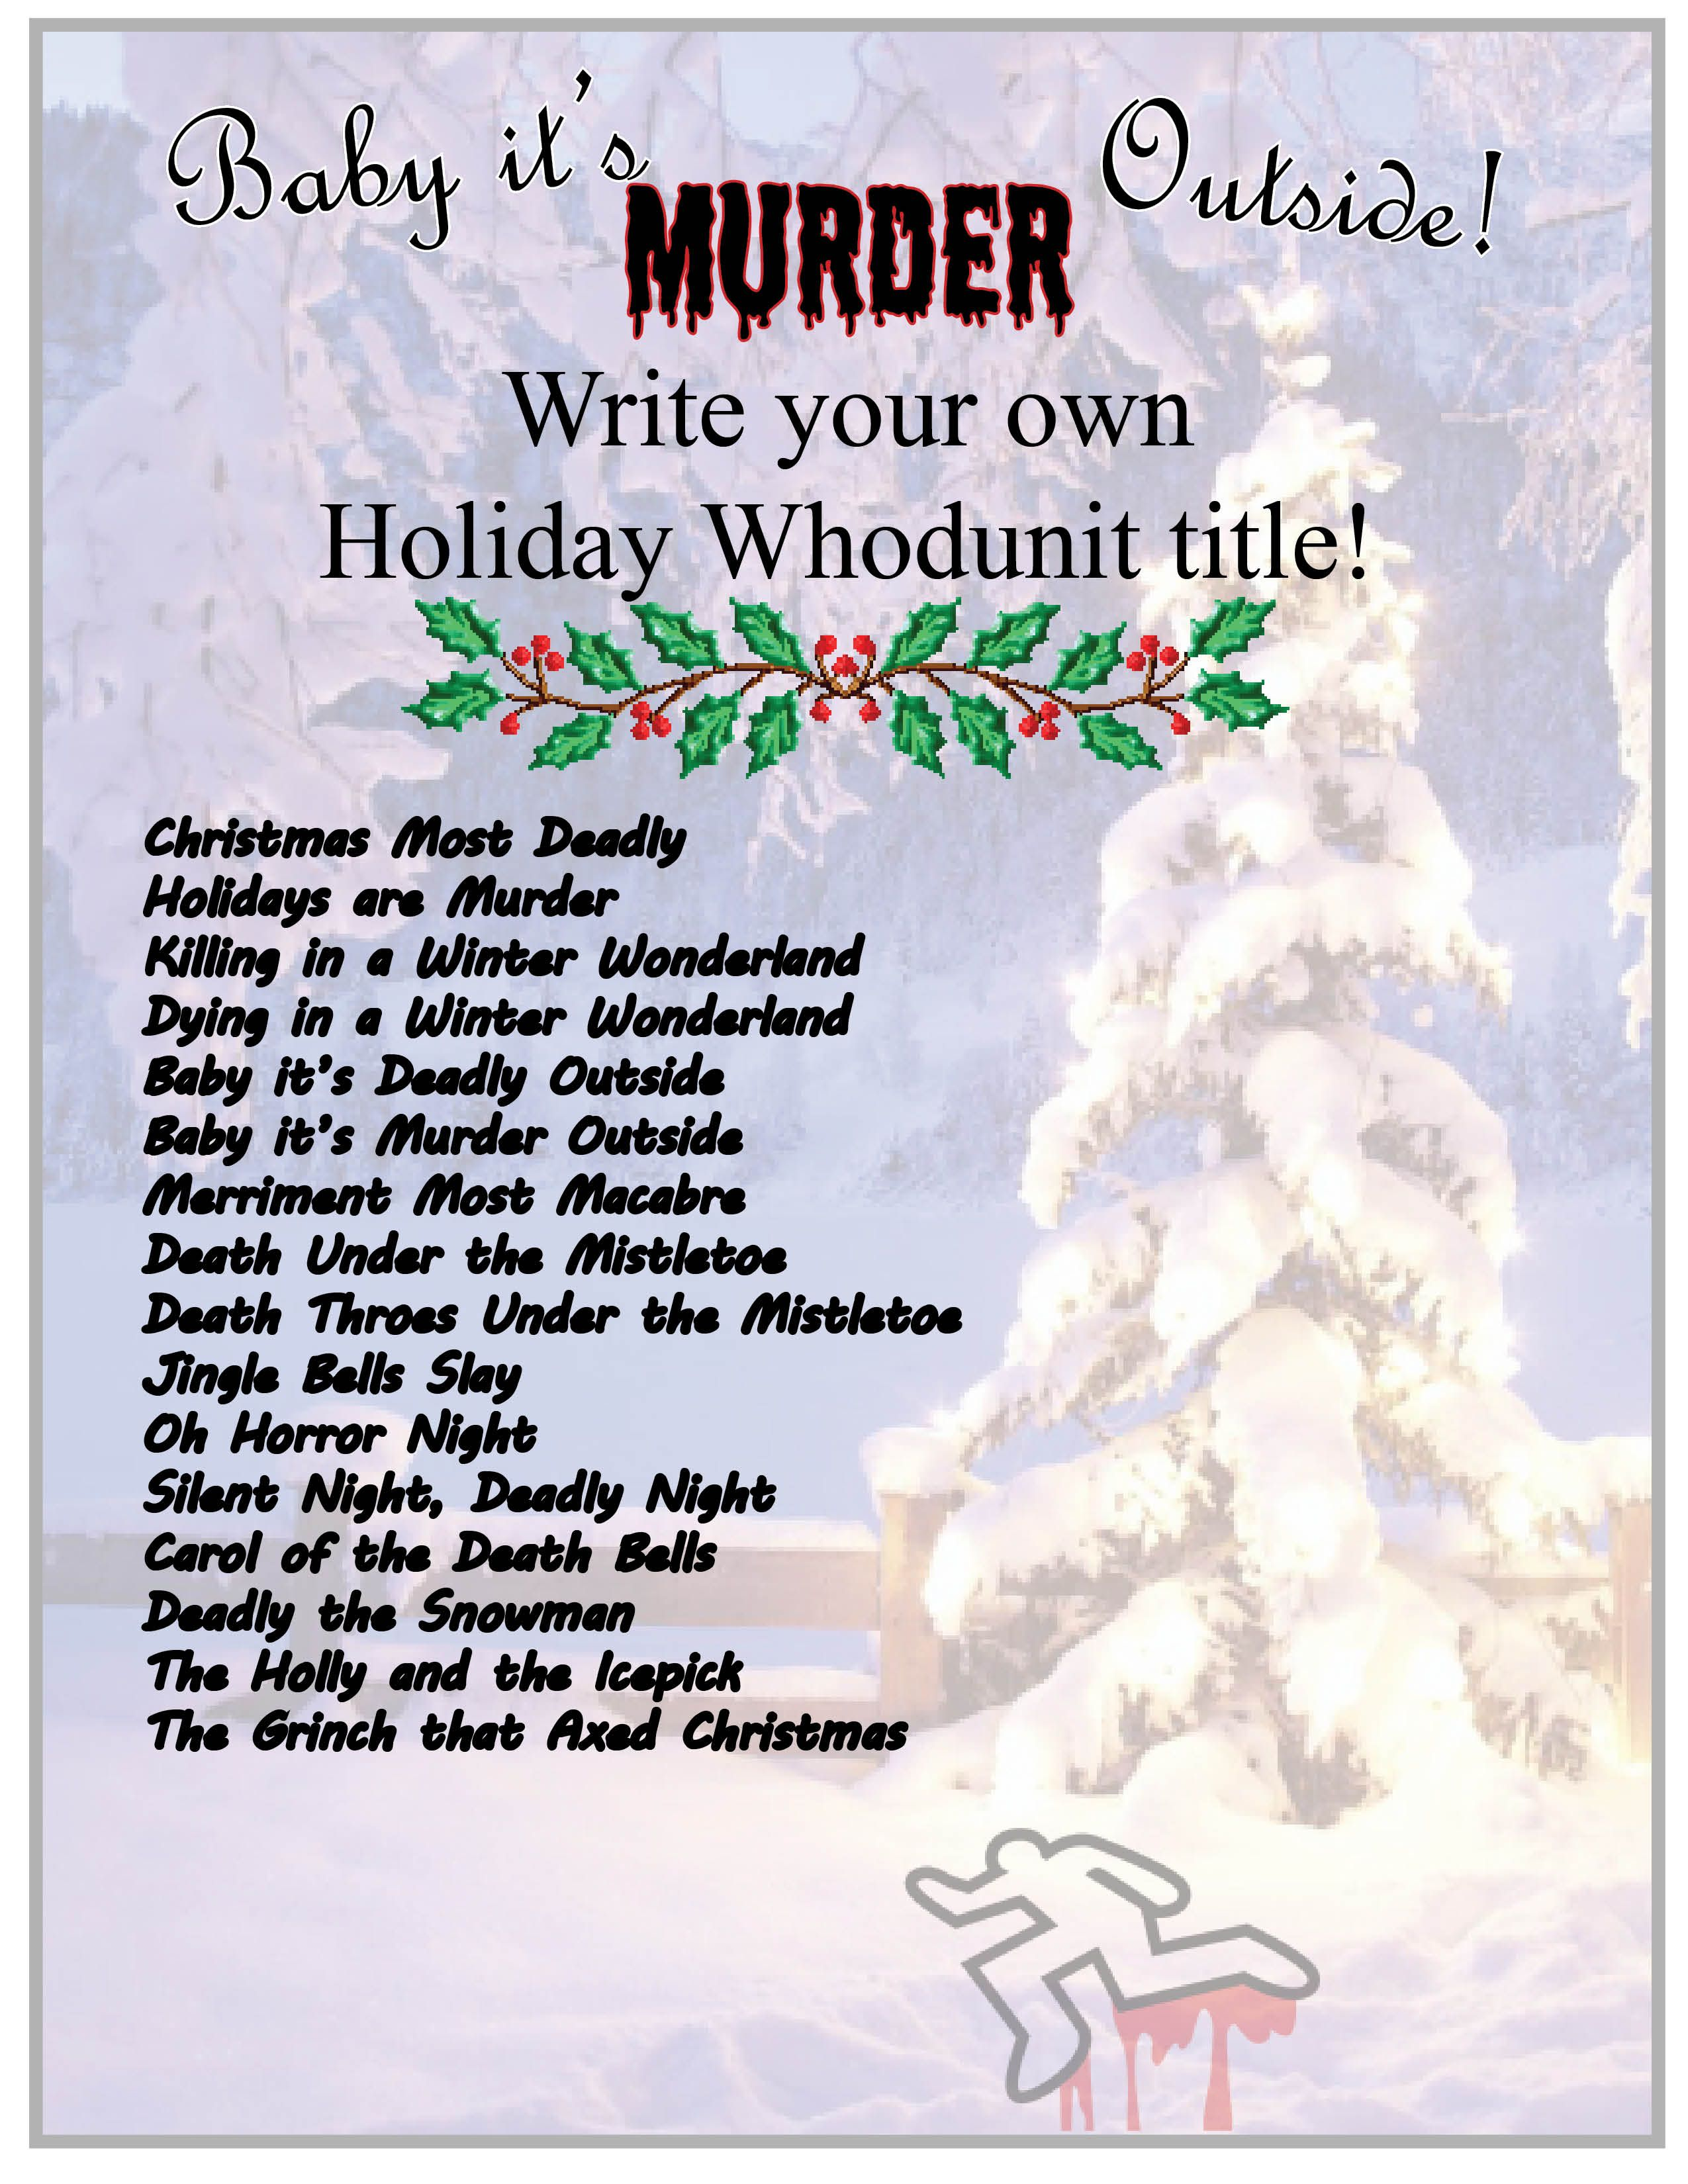 Holiday Murder Mysteries - we asked patrons to come up with their own titles.